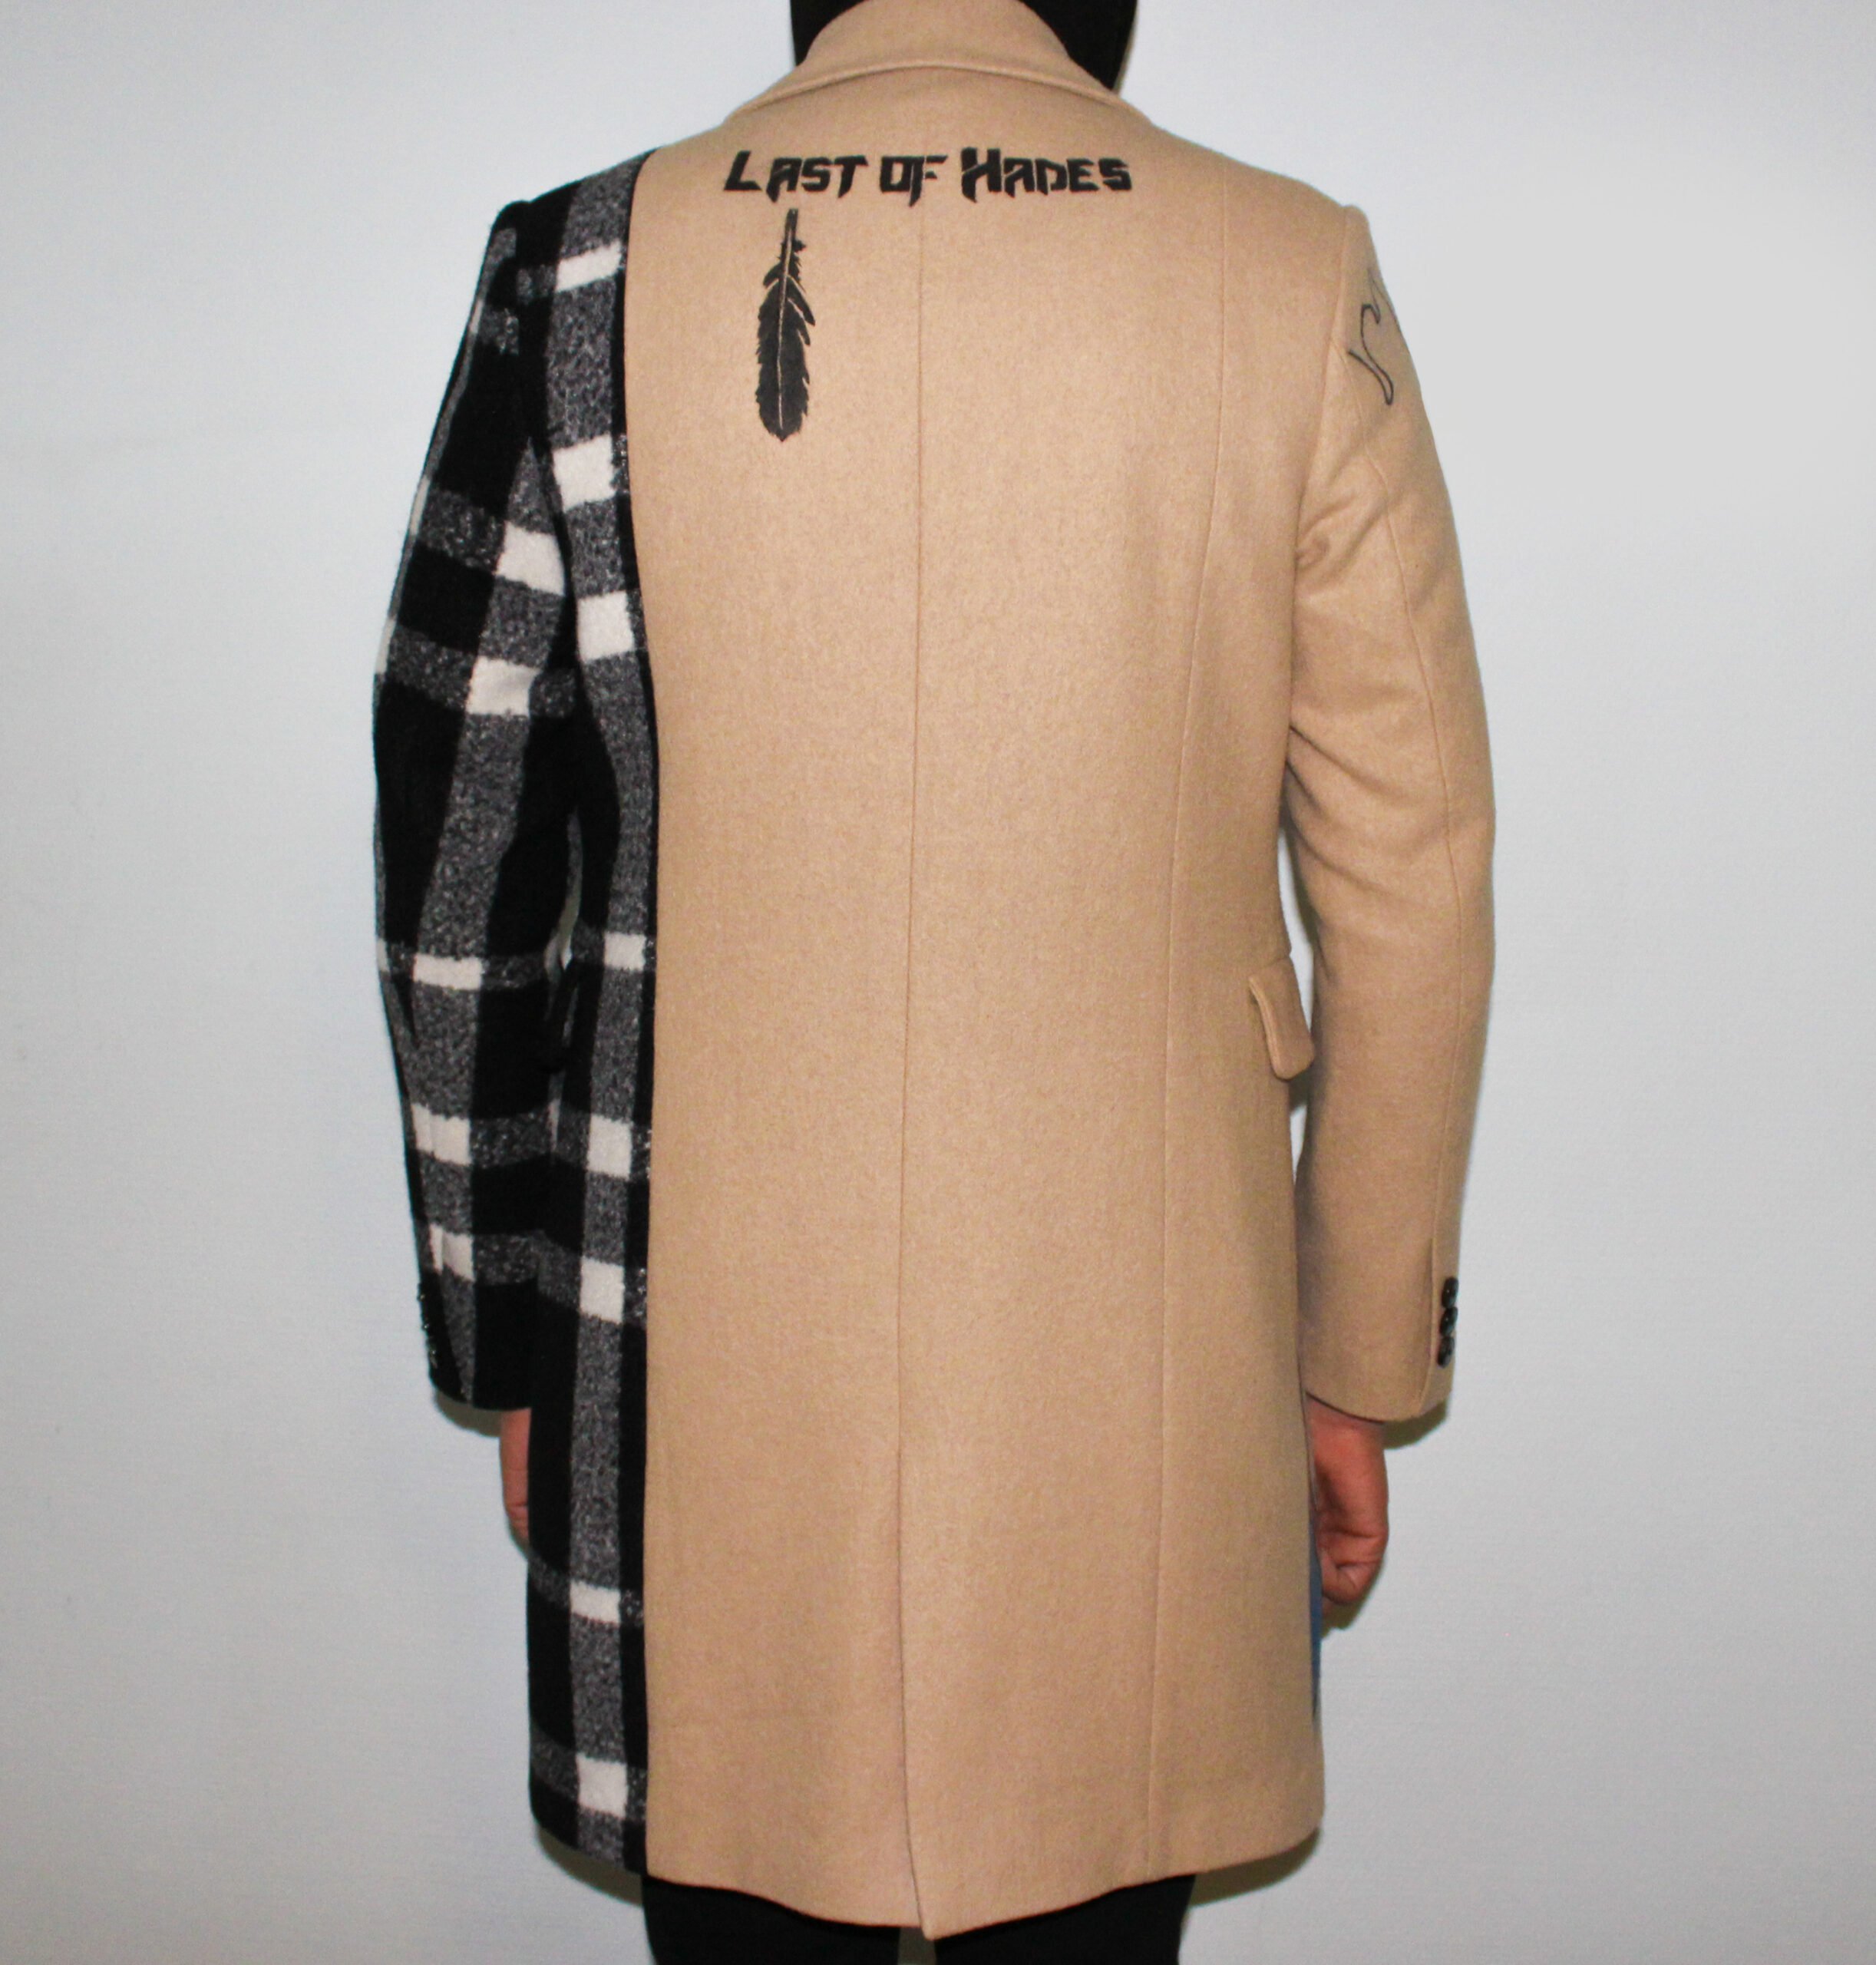 Last of Hades back overcoat